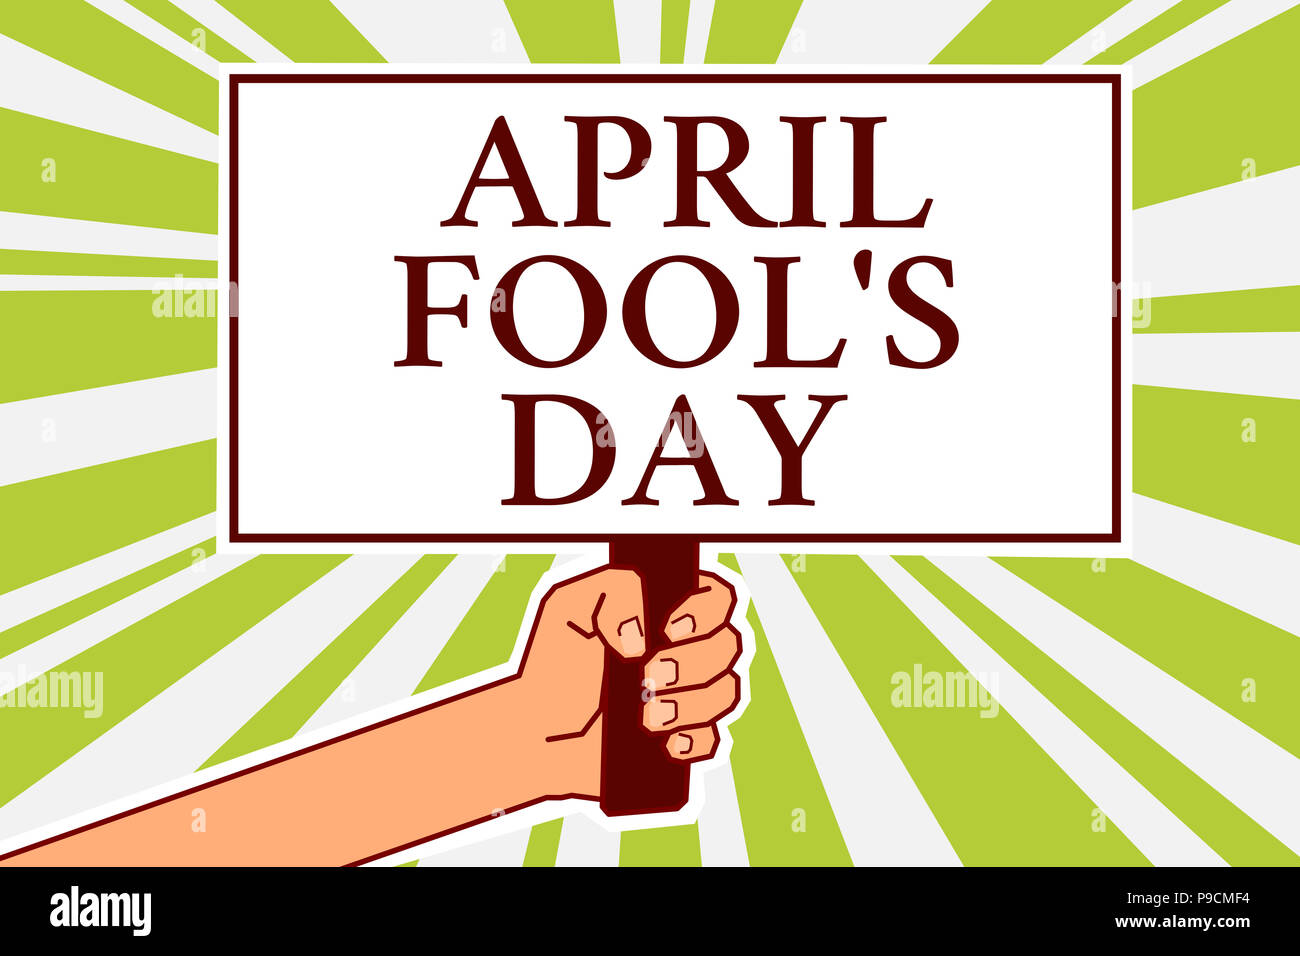 Word writing text April Fool s is Day. Business concept for Practical jokes humor pranks Celebration funny foolish Notice board symbol scripted text i - Stock Image